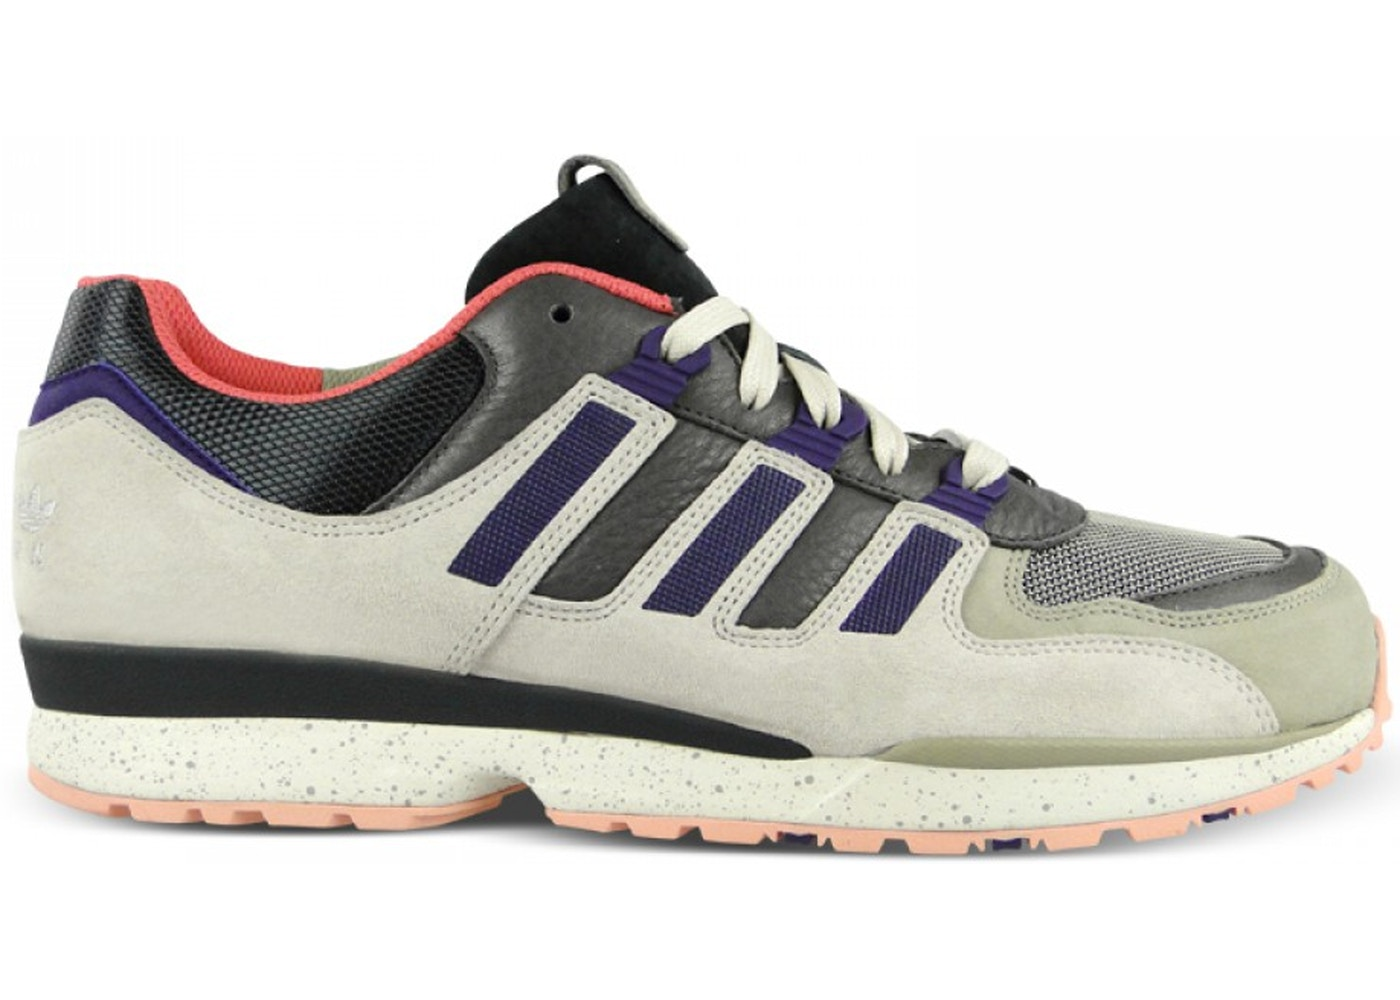 5f2af30a5a3792 adidas Torsion Integral S Sneaker Freaker Bliss - M22416